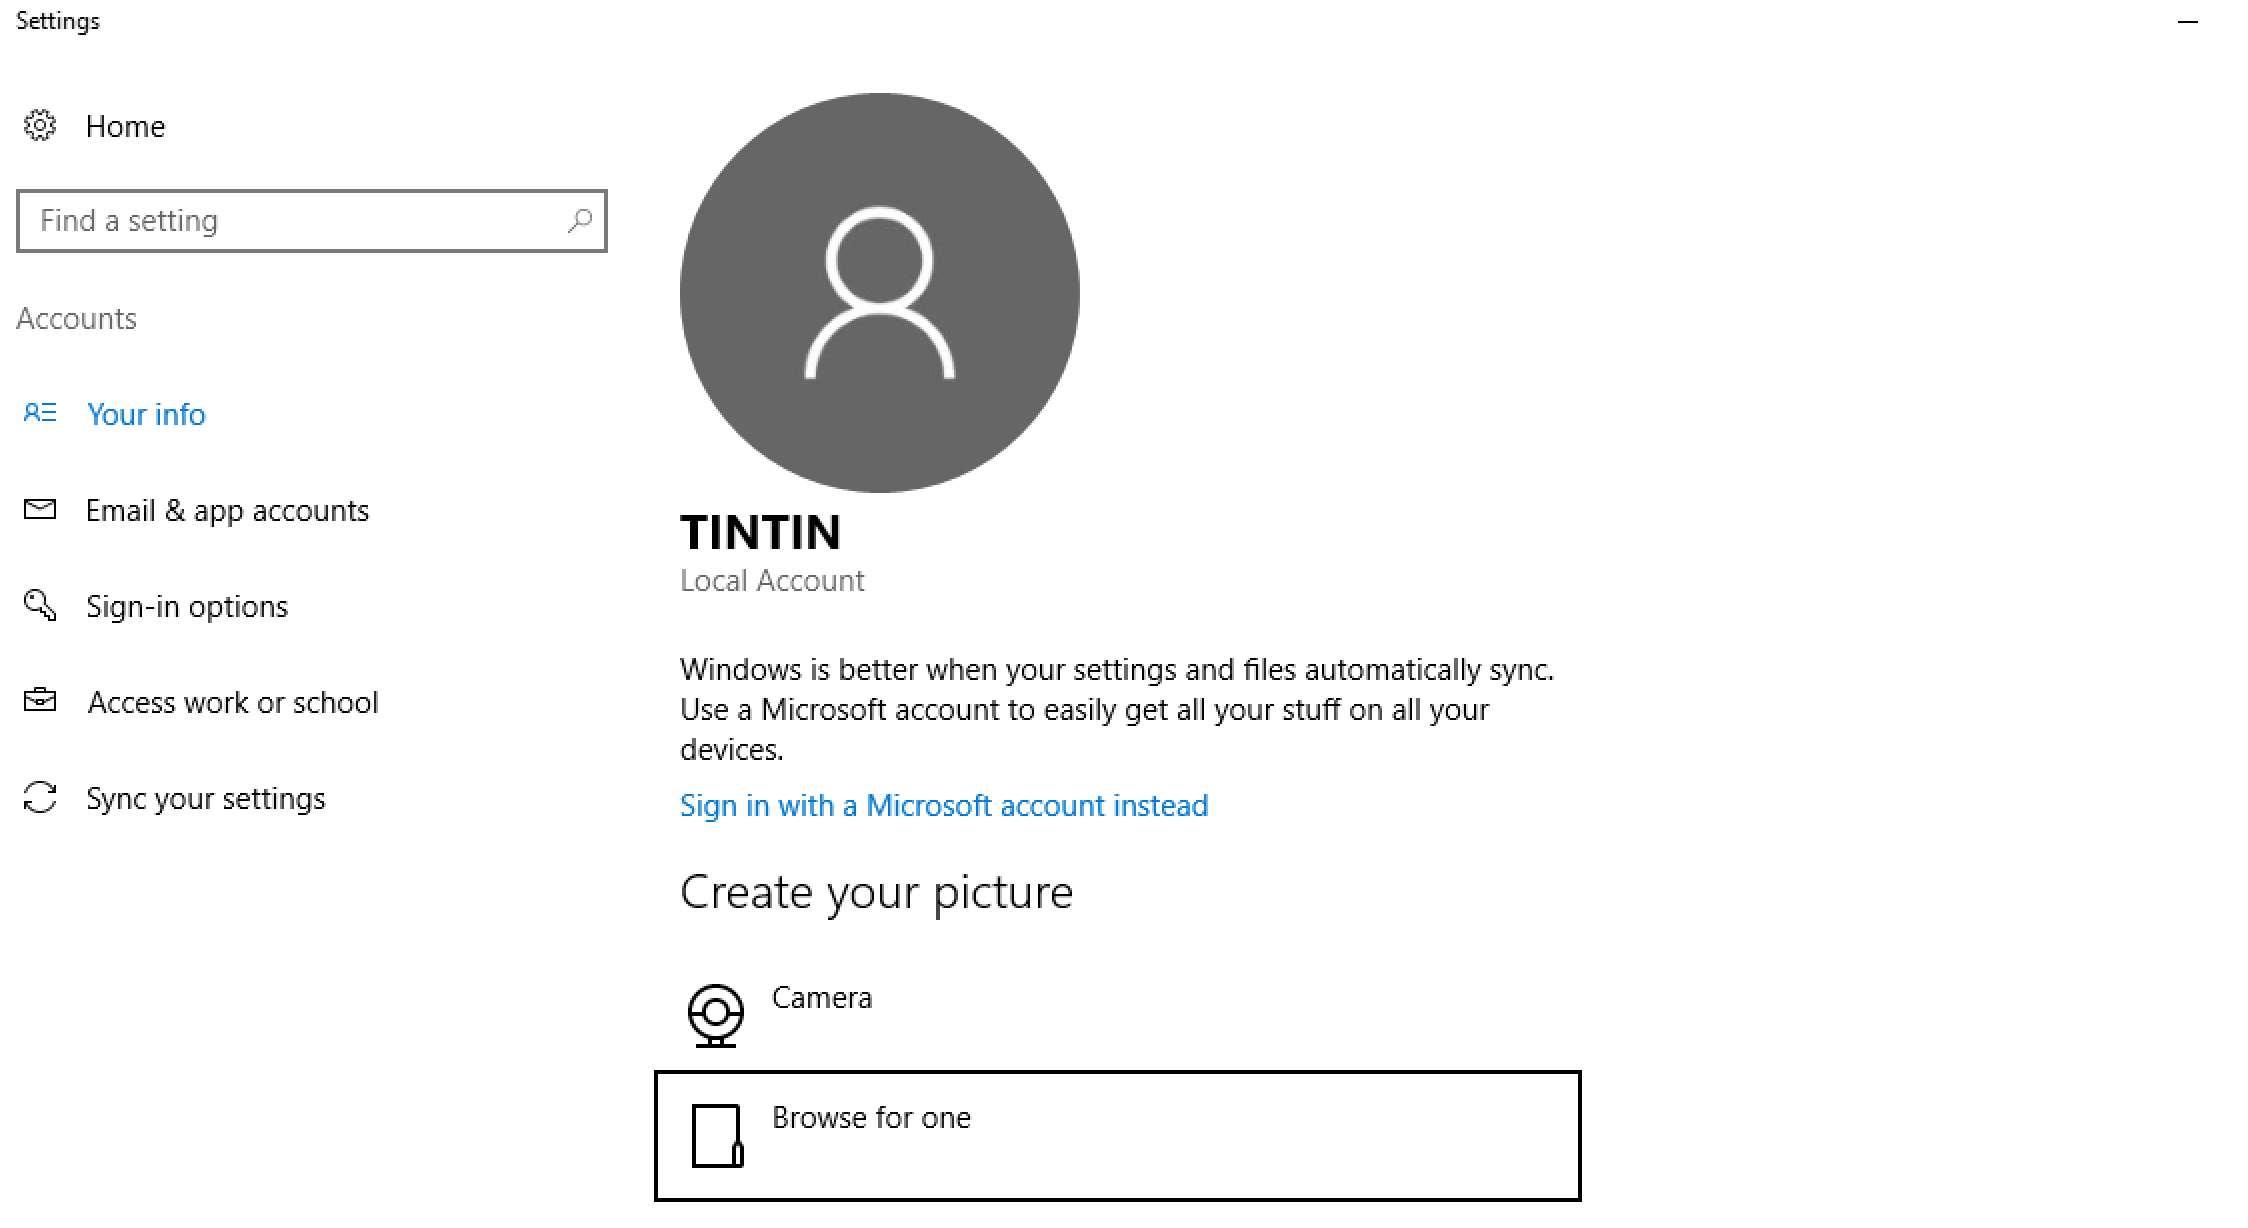 microsoft windows 10.1 account settings default generic account photo picture